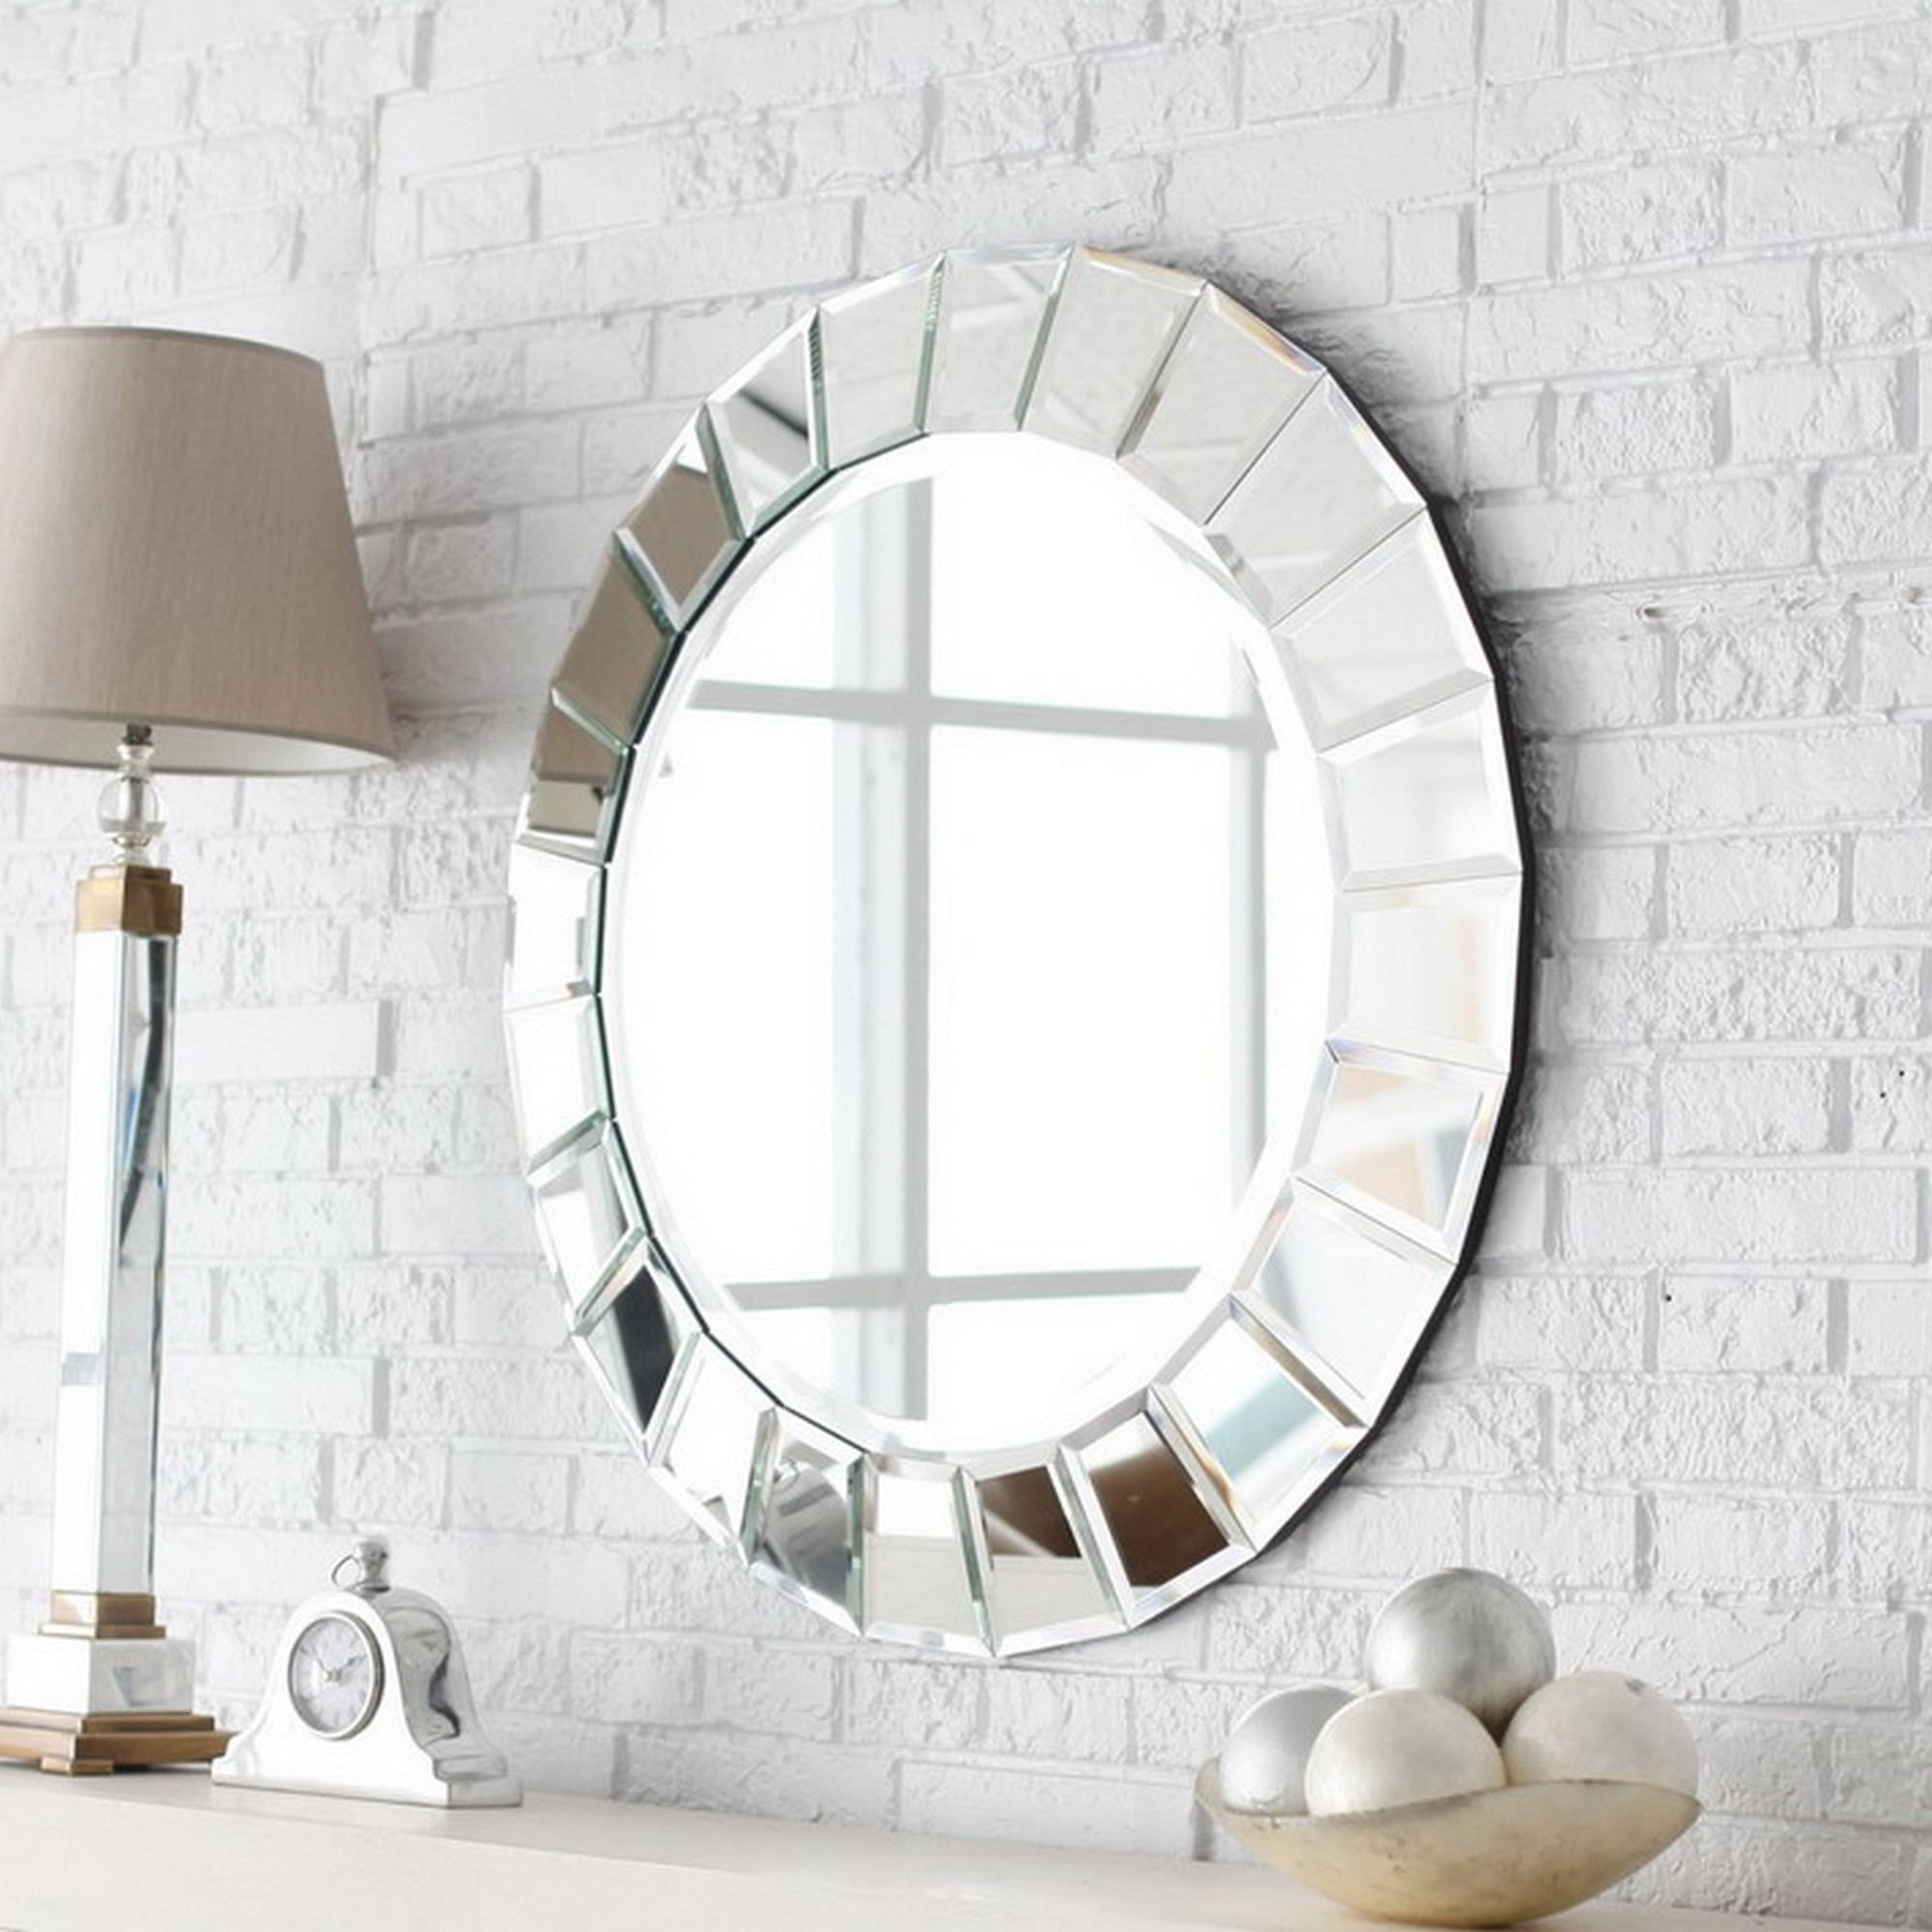 Oval Bathroom Mirror Ideas Wall Mounted Rectangular Clear Glass Regarding Free Standing Oval Mirror (Image 12 of 15)